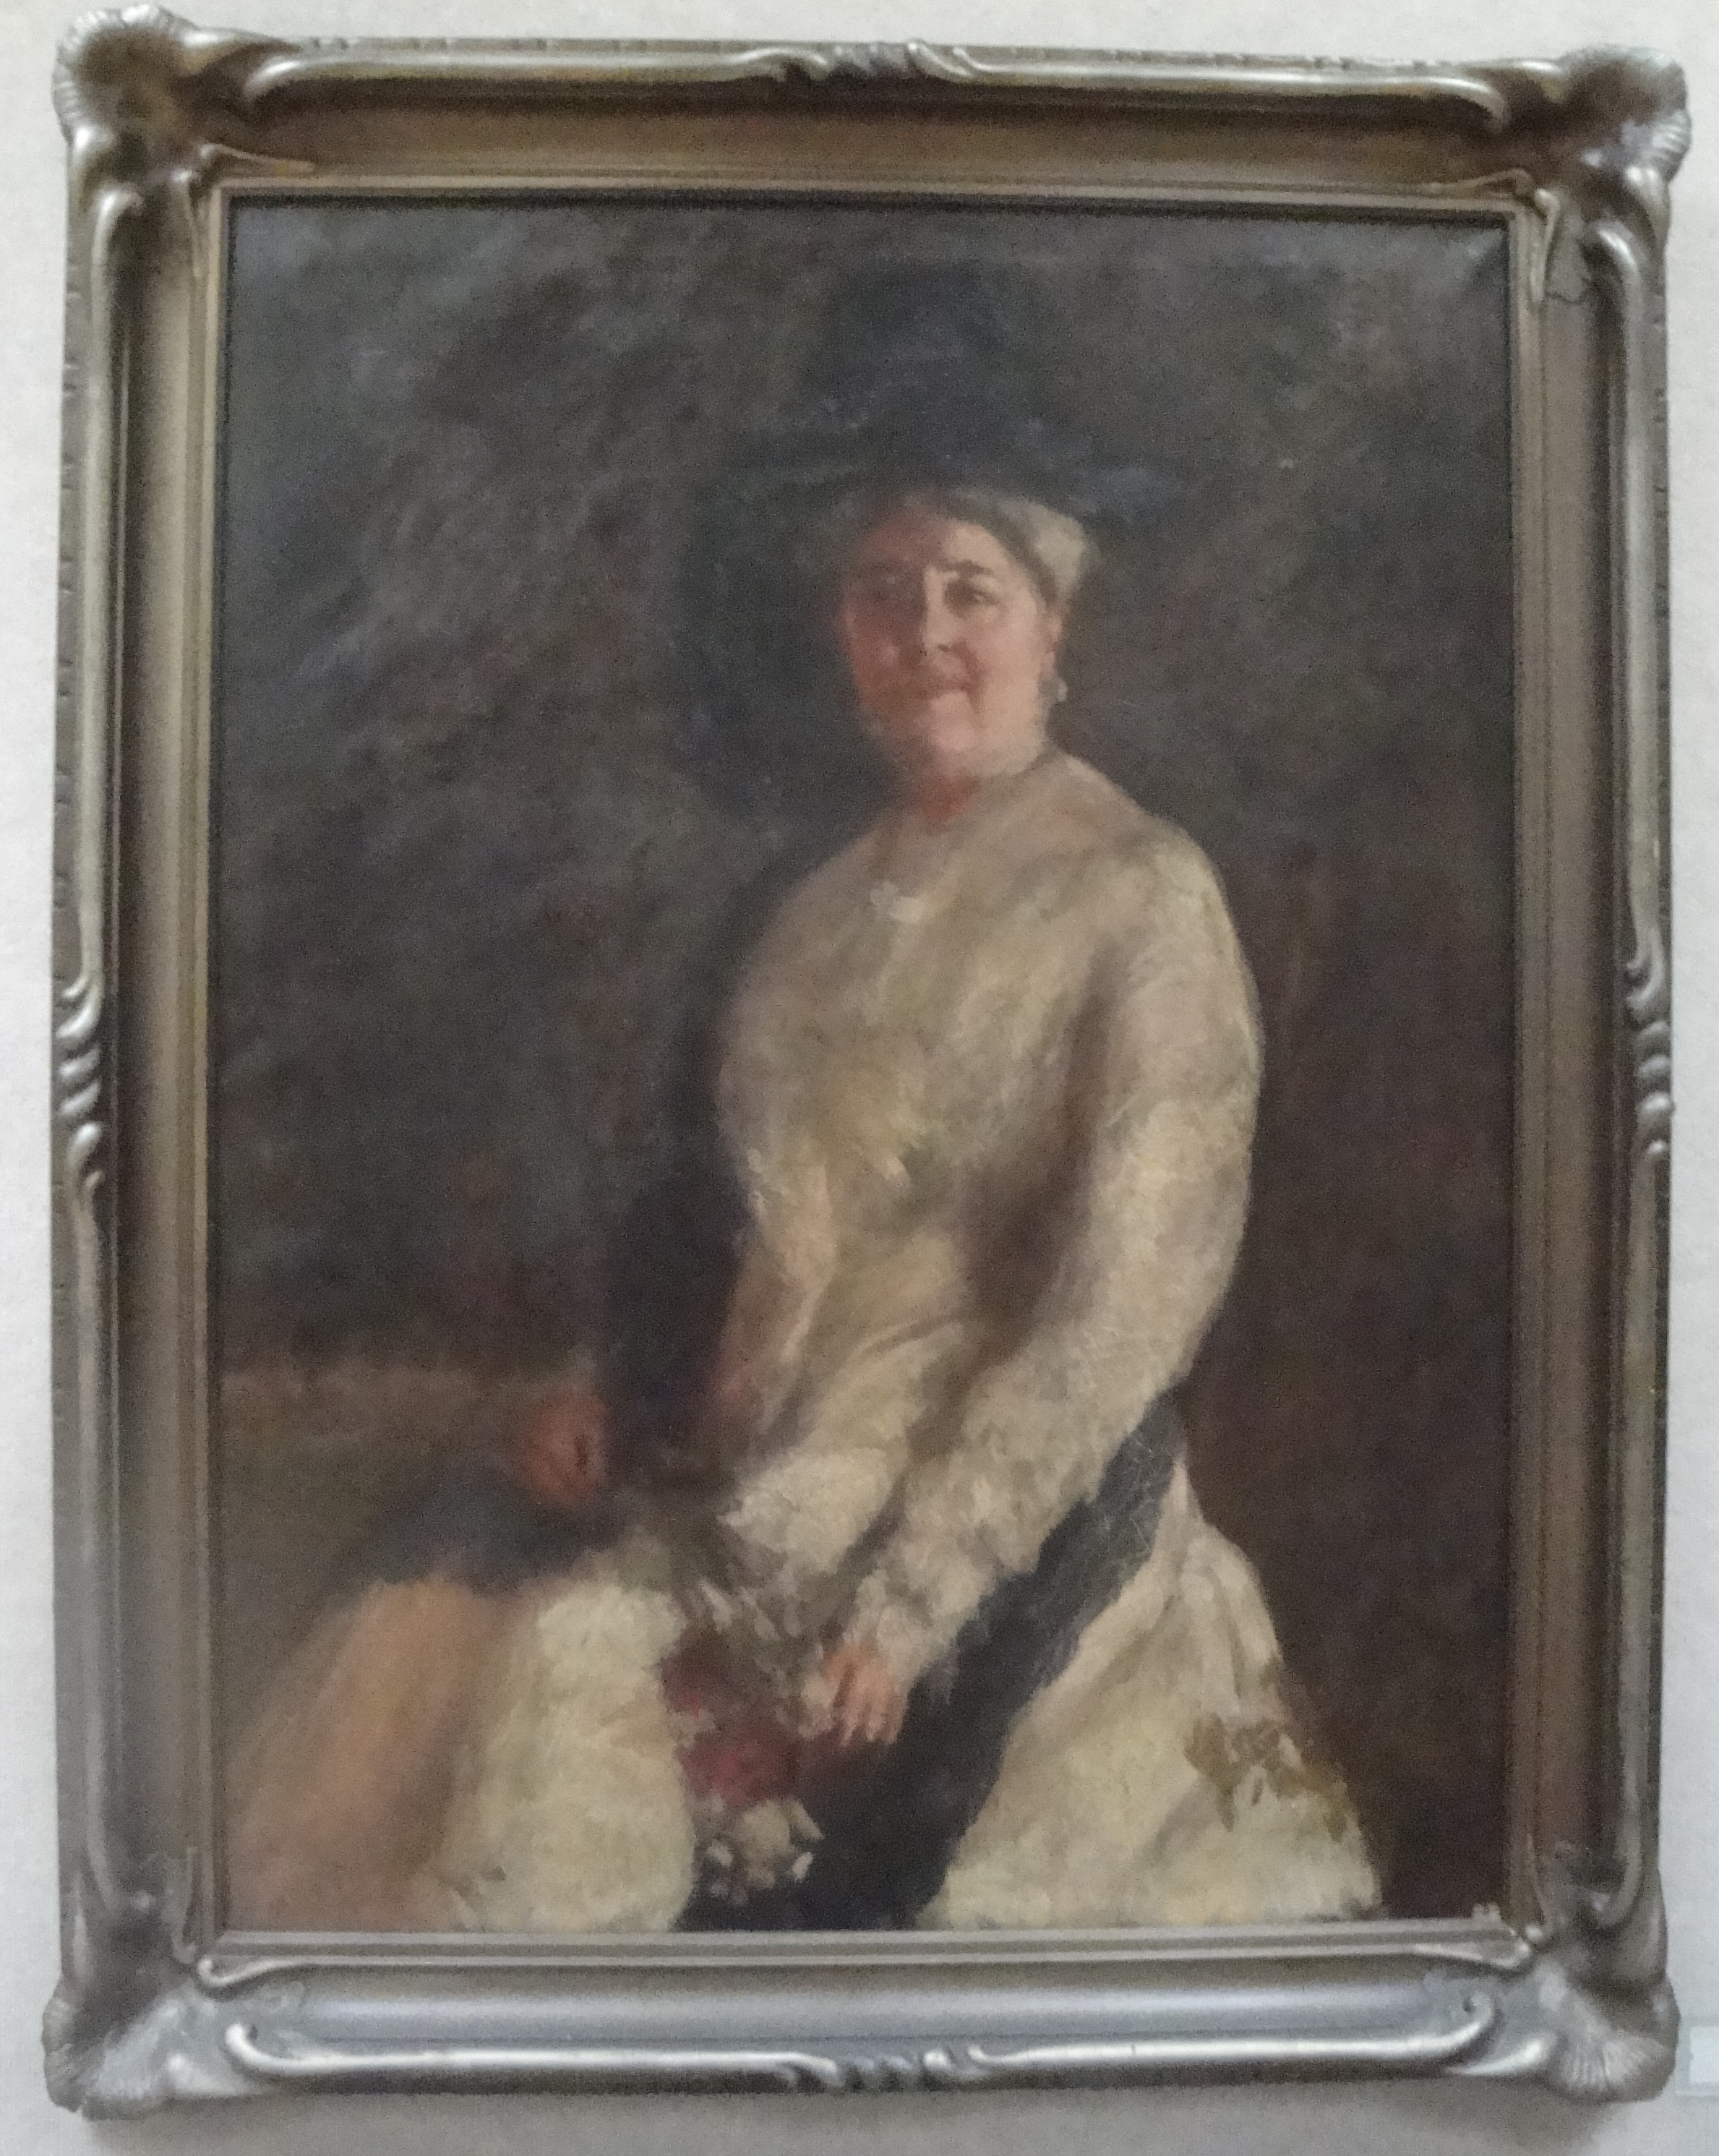 Portrait of Margaret Byers by William Edwards Cook 1881-1959